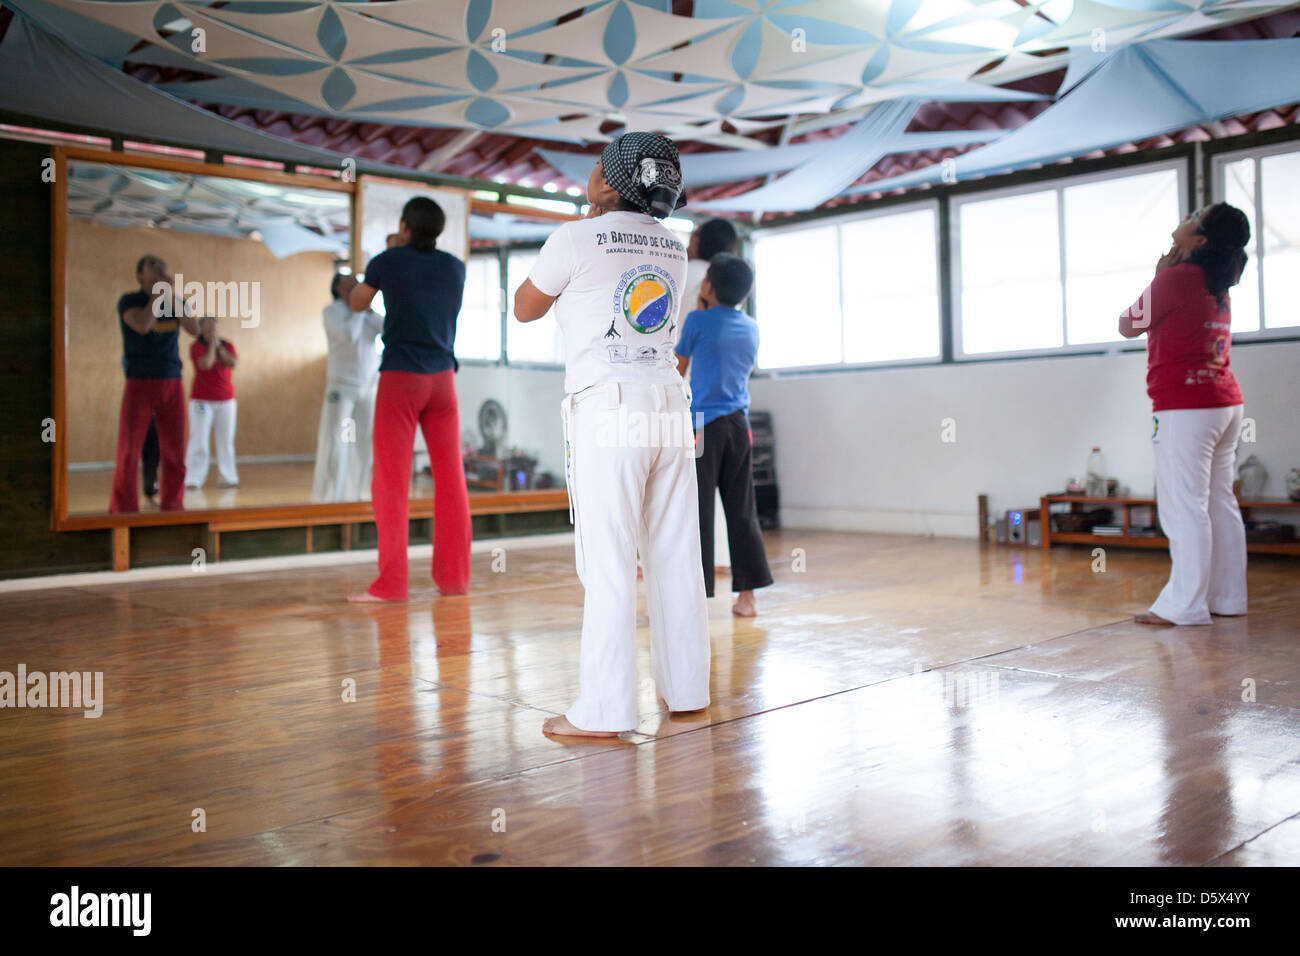 Students in a capoeira group warm up before starting their class. - Stock Image